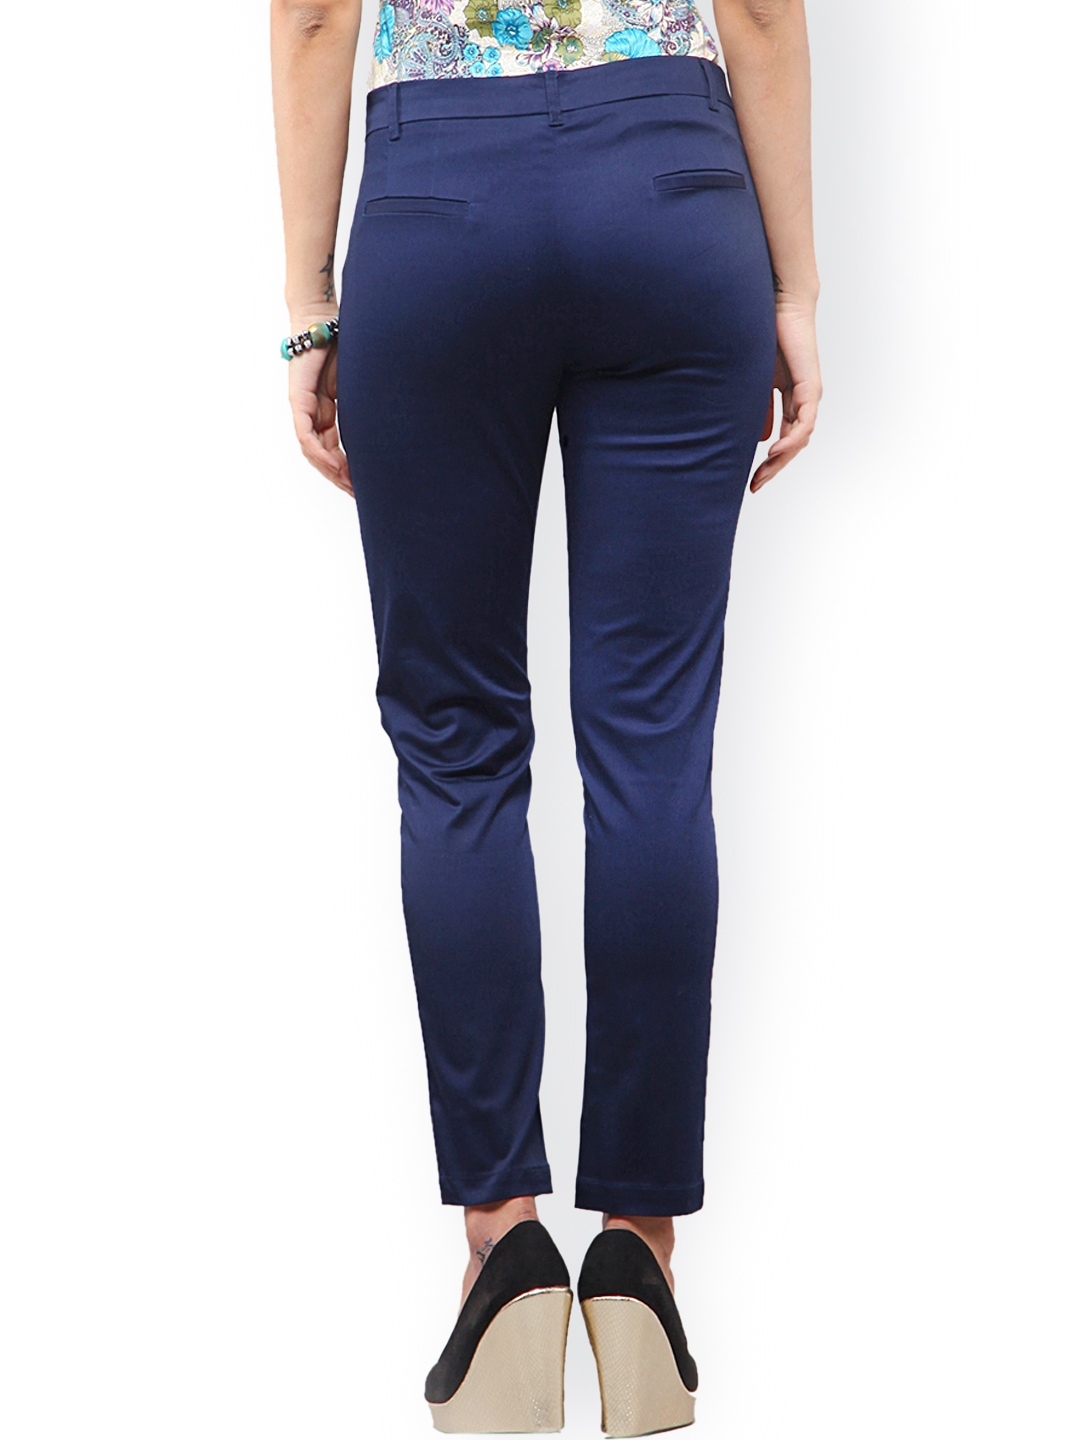 Formal Trousers Blue Formal Trousers Smart occasions call for smart trousers – our super-sharp styles, from £15, make brushing up for a work, a walk in the park or a stroll through town a cinch.